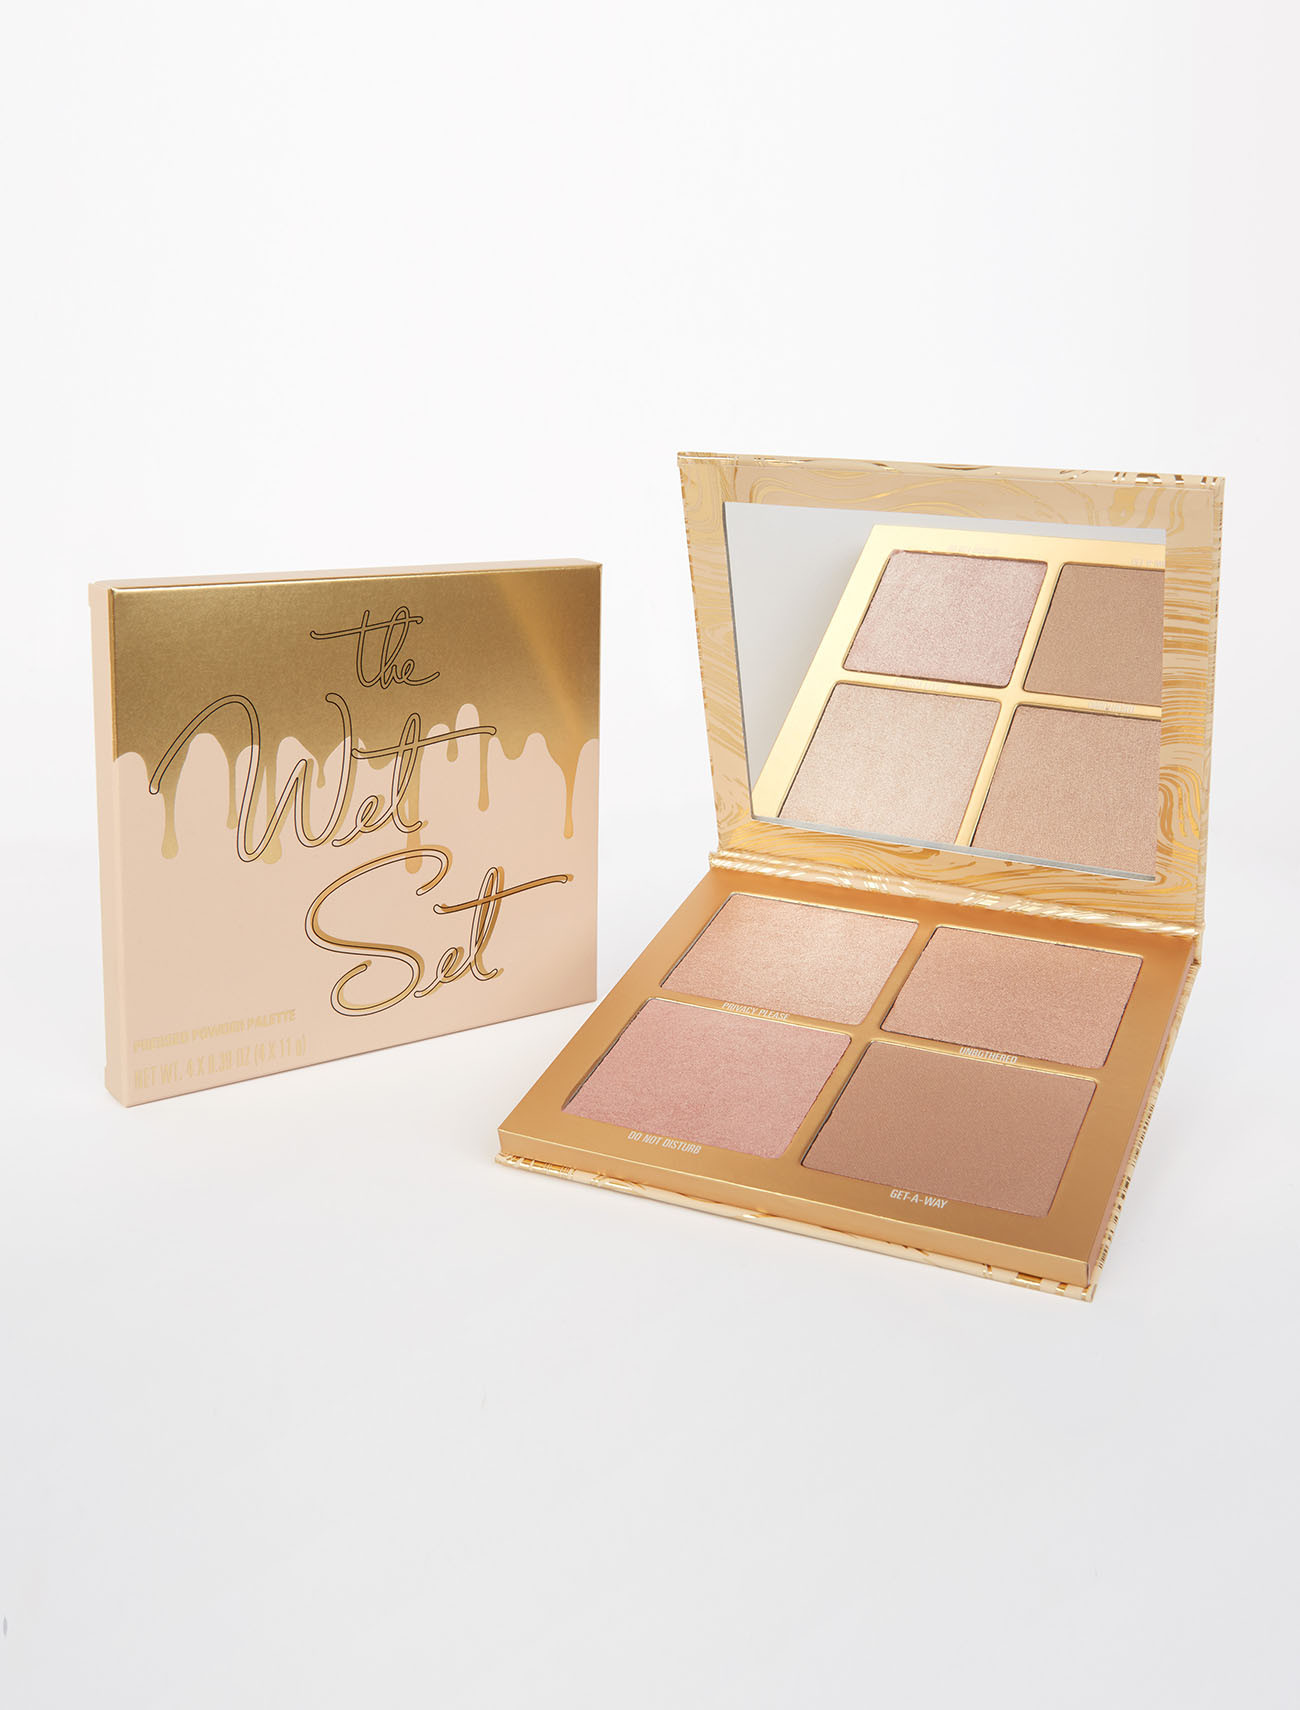 Kylie Cosmetics℠ By Kylie Jenner The Wet Set | Pressed Illuminating Powder